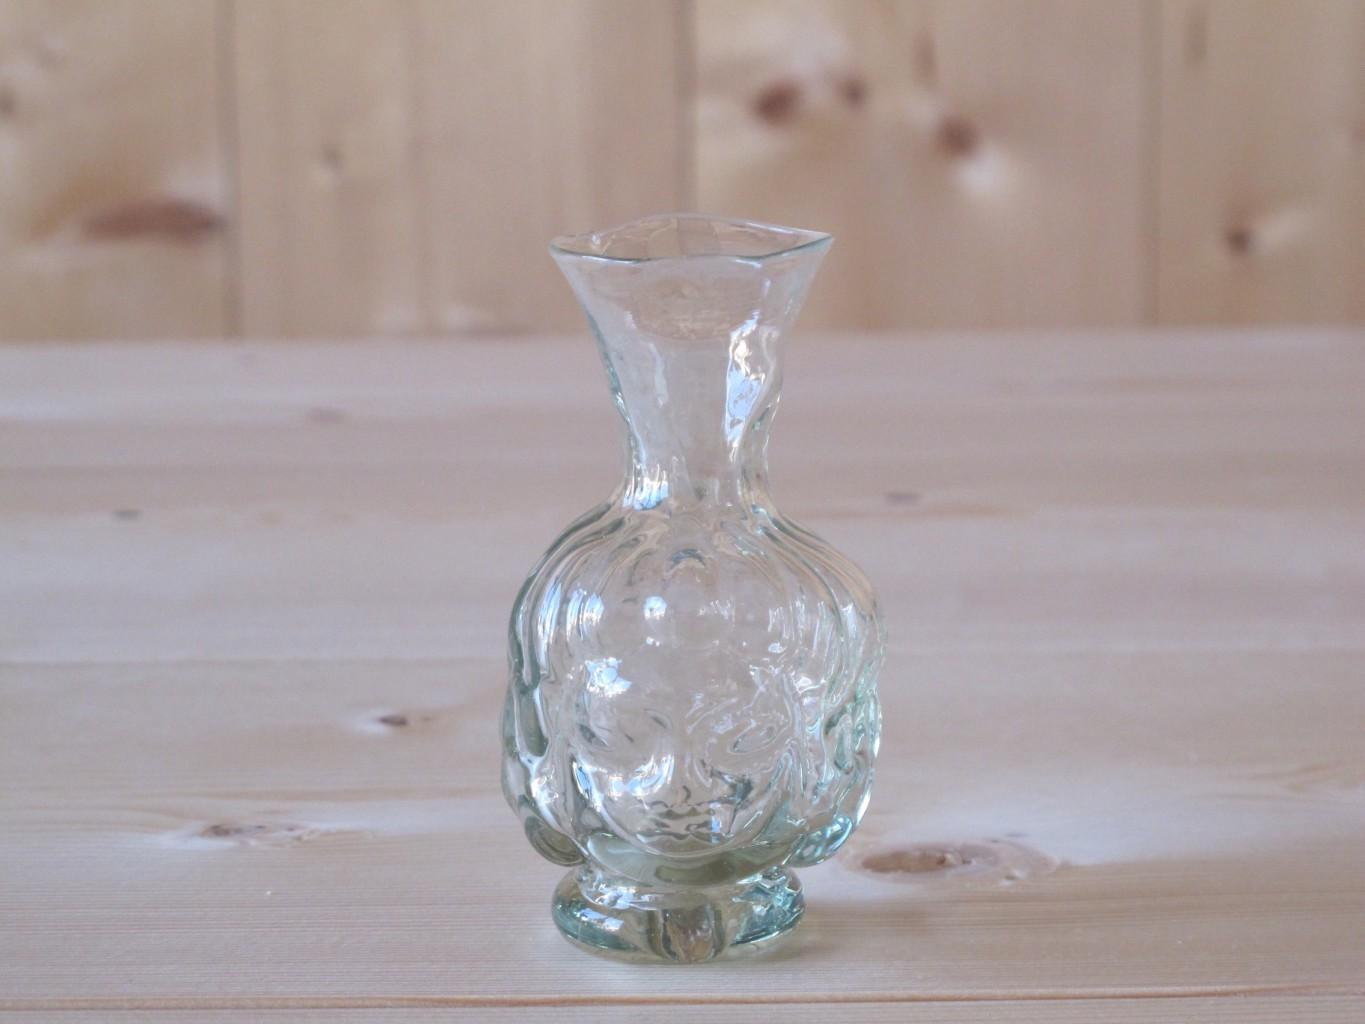 Thibaut head-shaped small carafe vase by La Soufflerie